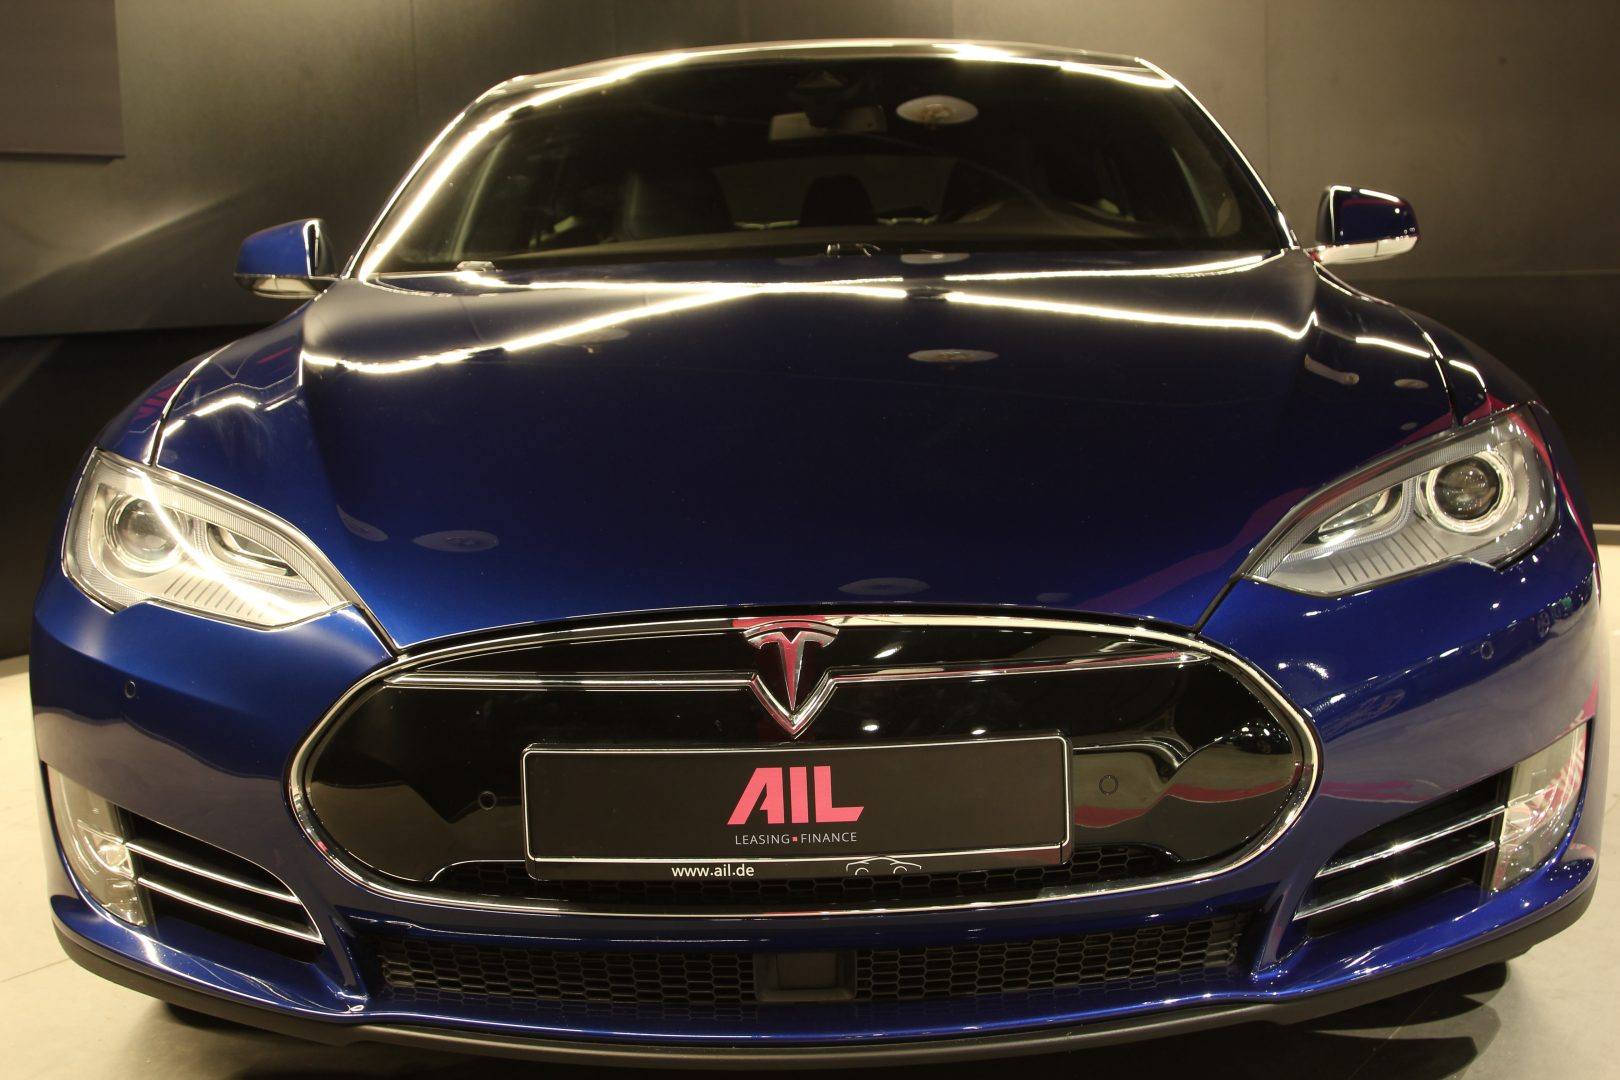 AIL TESLA Model S P85 D Performance  3